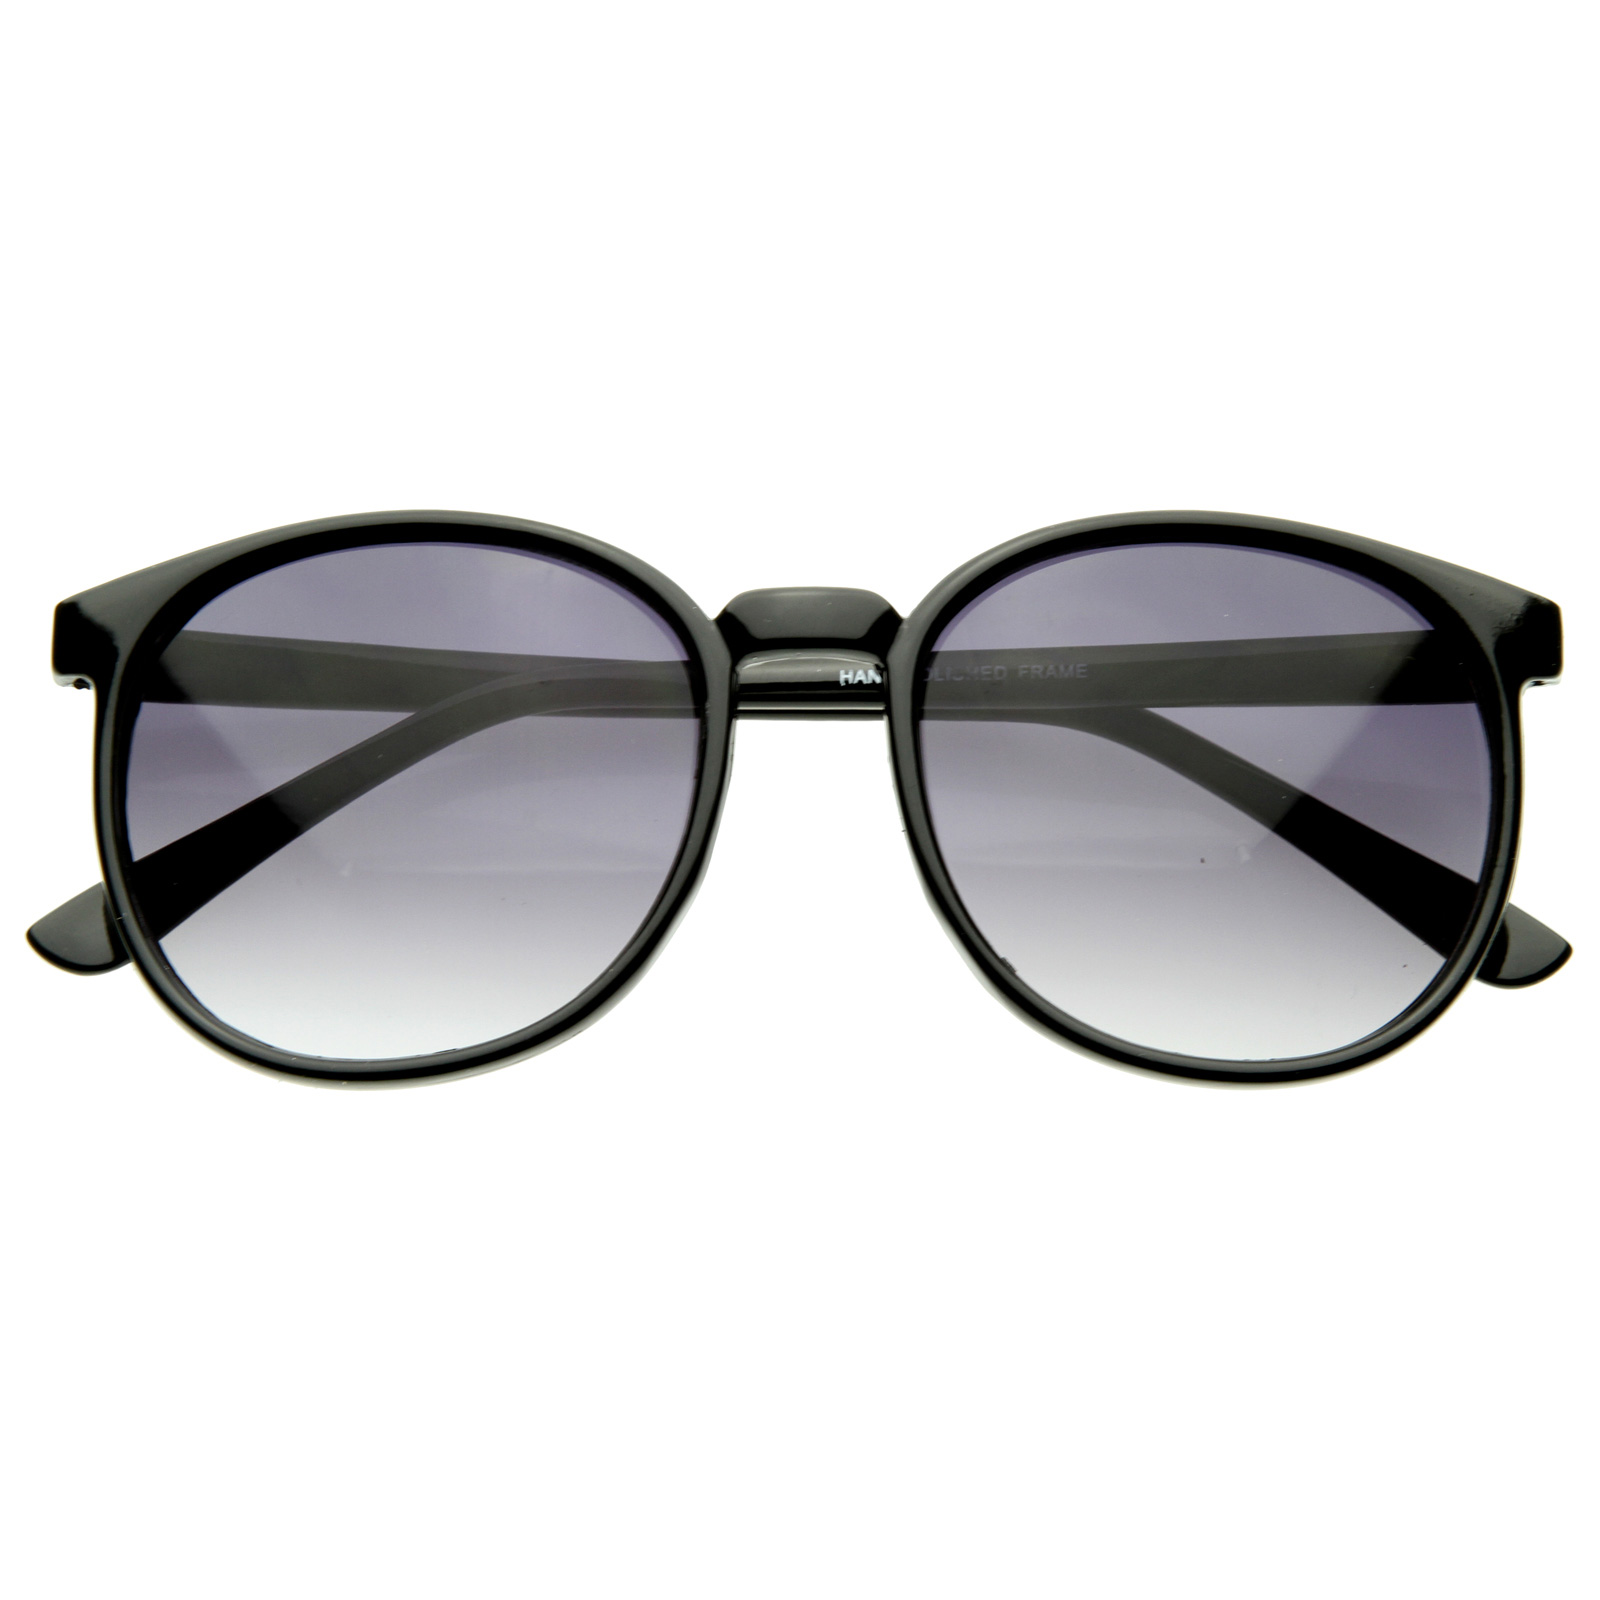 Vintage Inspired Round Circle P-3 Frame Sunglasses